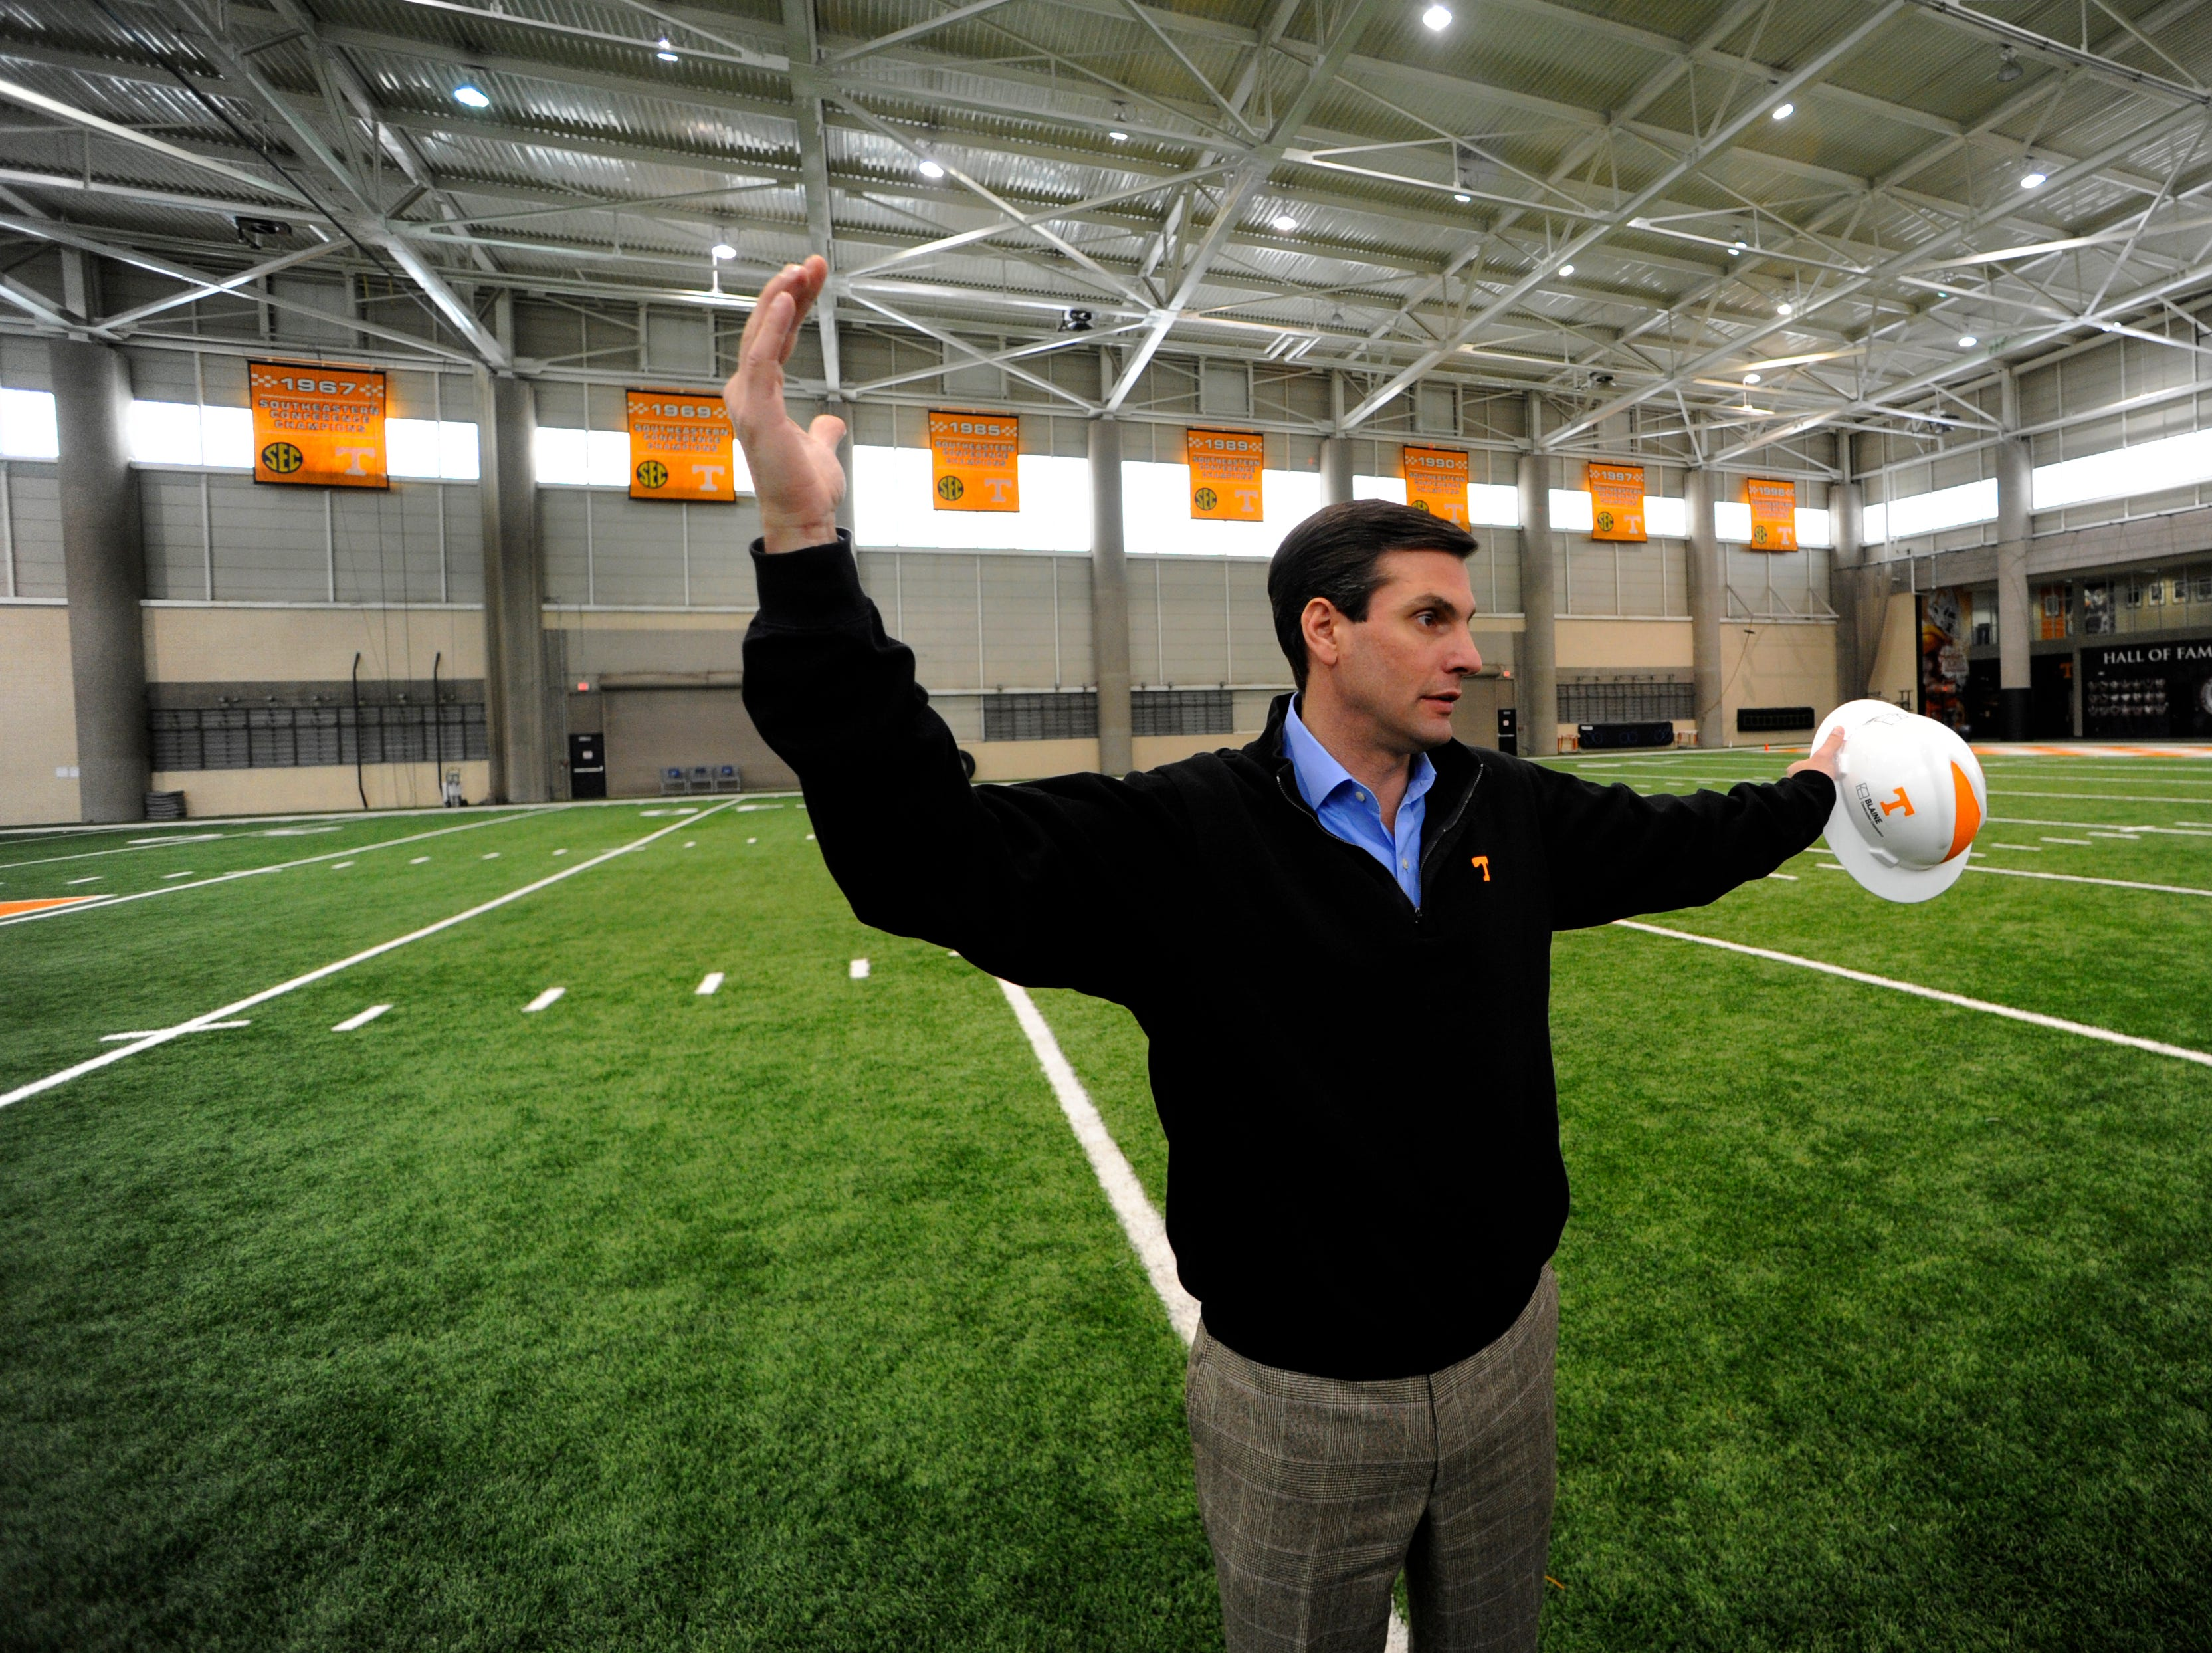 Tennessee head football coach Derek Dooley gave the News Sentinel a tour of the new football training facility Thursday, Feb. 9, 2012. Dooley started the tour in the current indoor facility which opened in 1989. The new facility is connected to the south end of the current facility and when opened and occupied by football the north and east sides will be renovated to accommodate others sports programs currently housed in the Stokley Athletic Center.